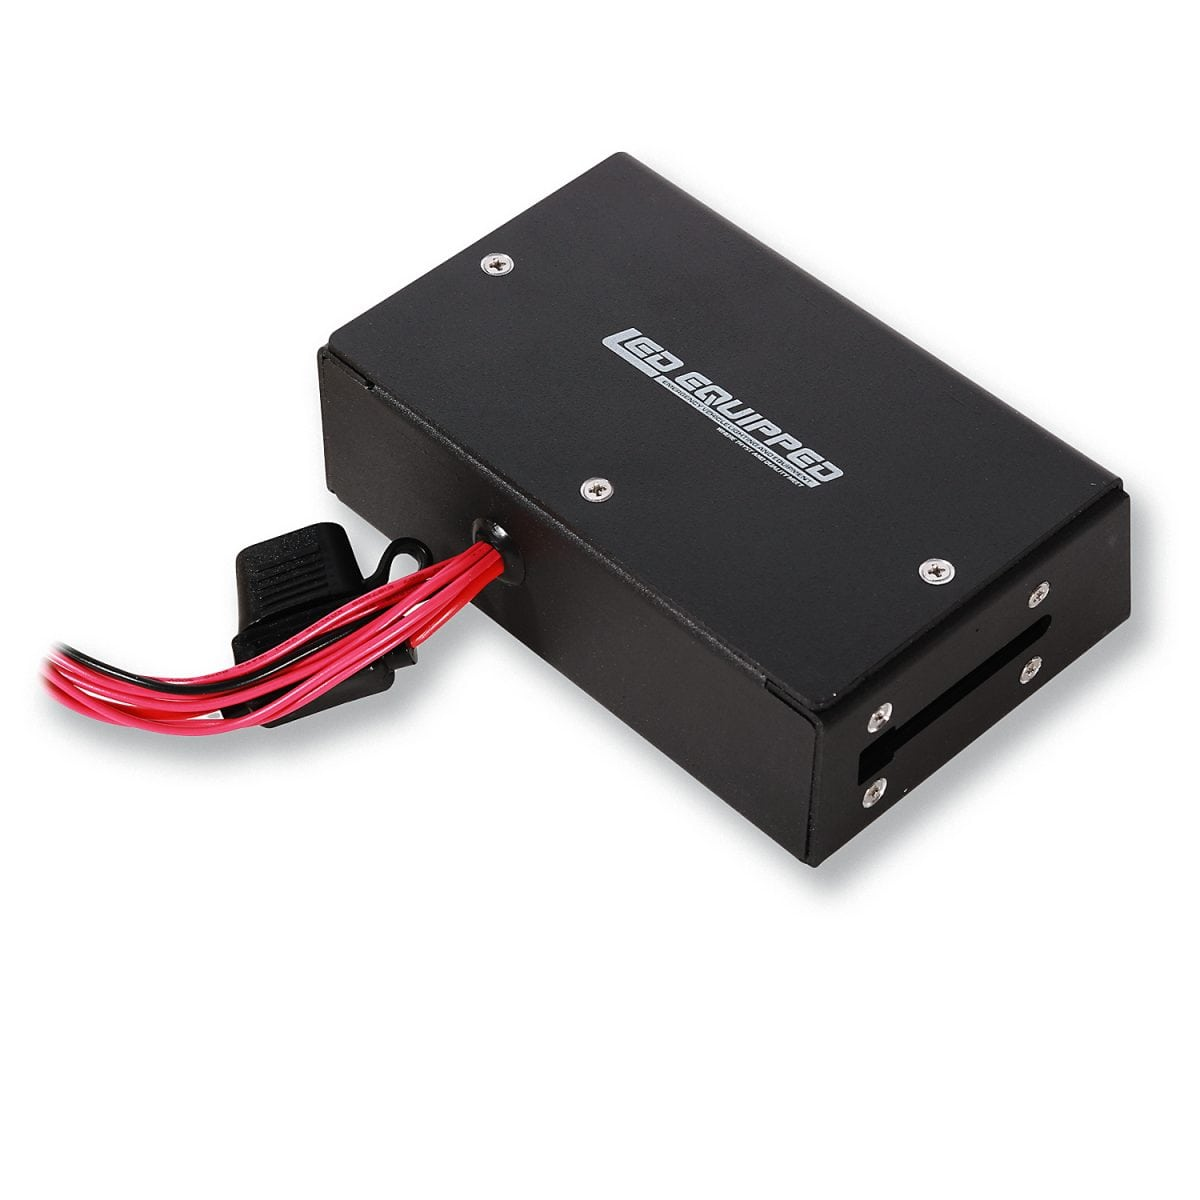 Full light bar control box led equipped mozeypictures Image collections